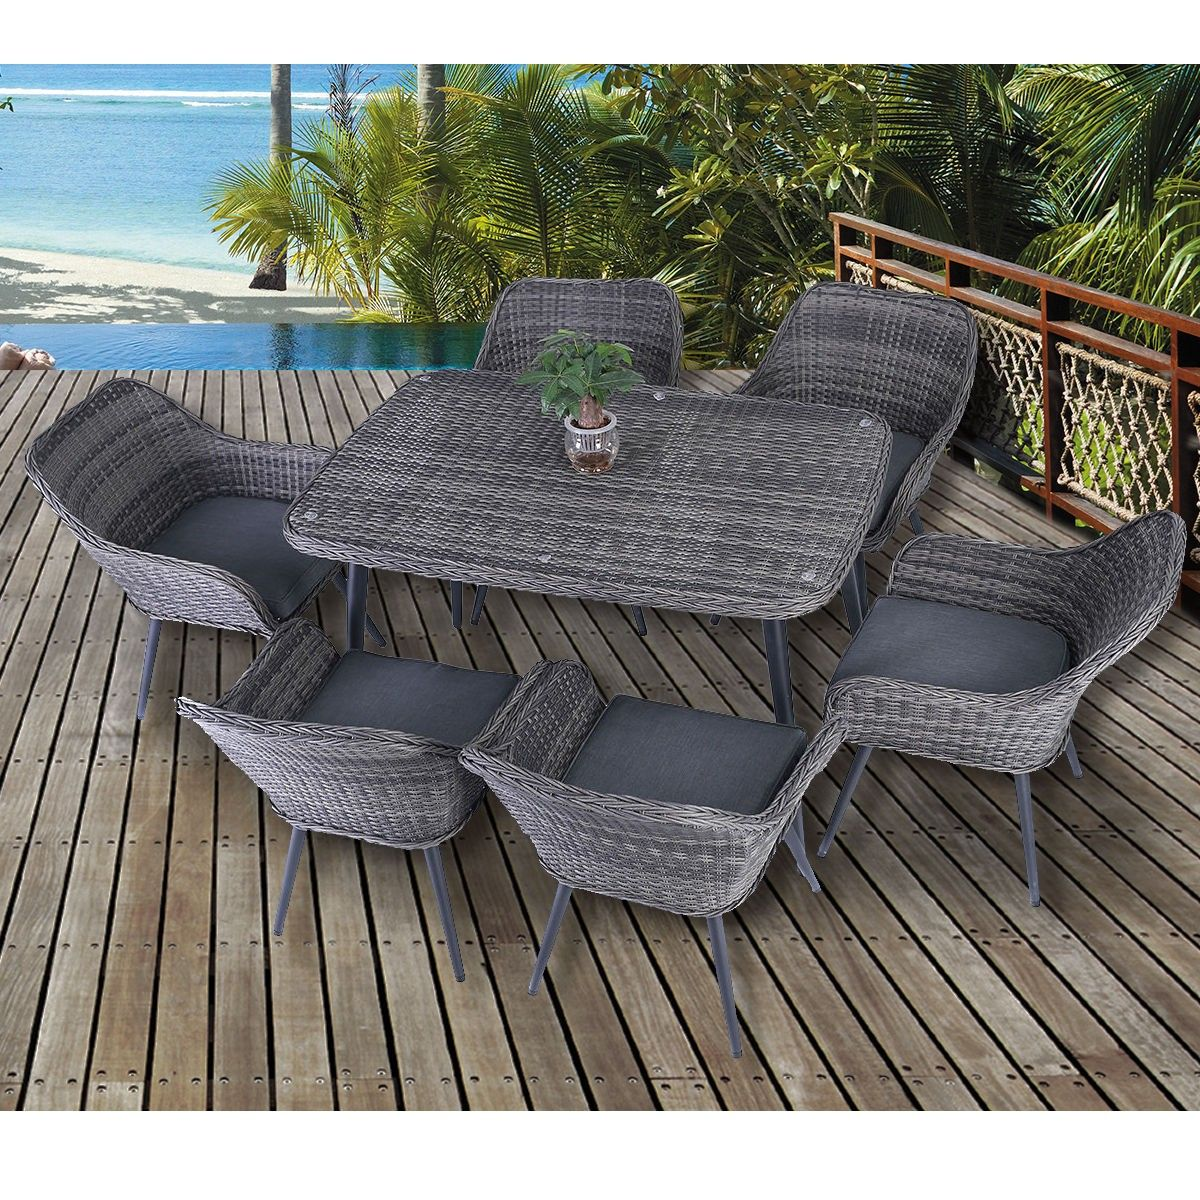 7 Pcs Patio Rattan Wicker Table Chairs Sofa Dining Furniture Set